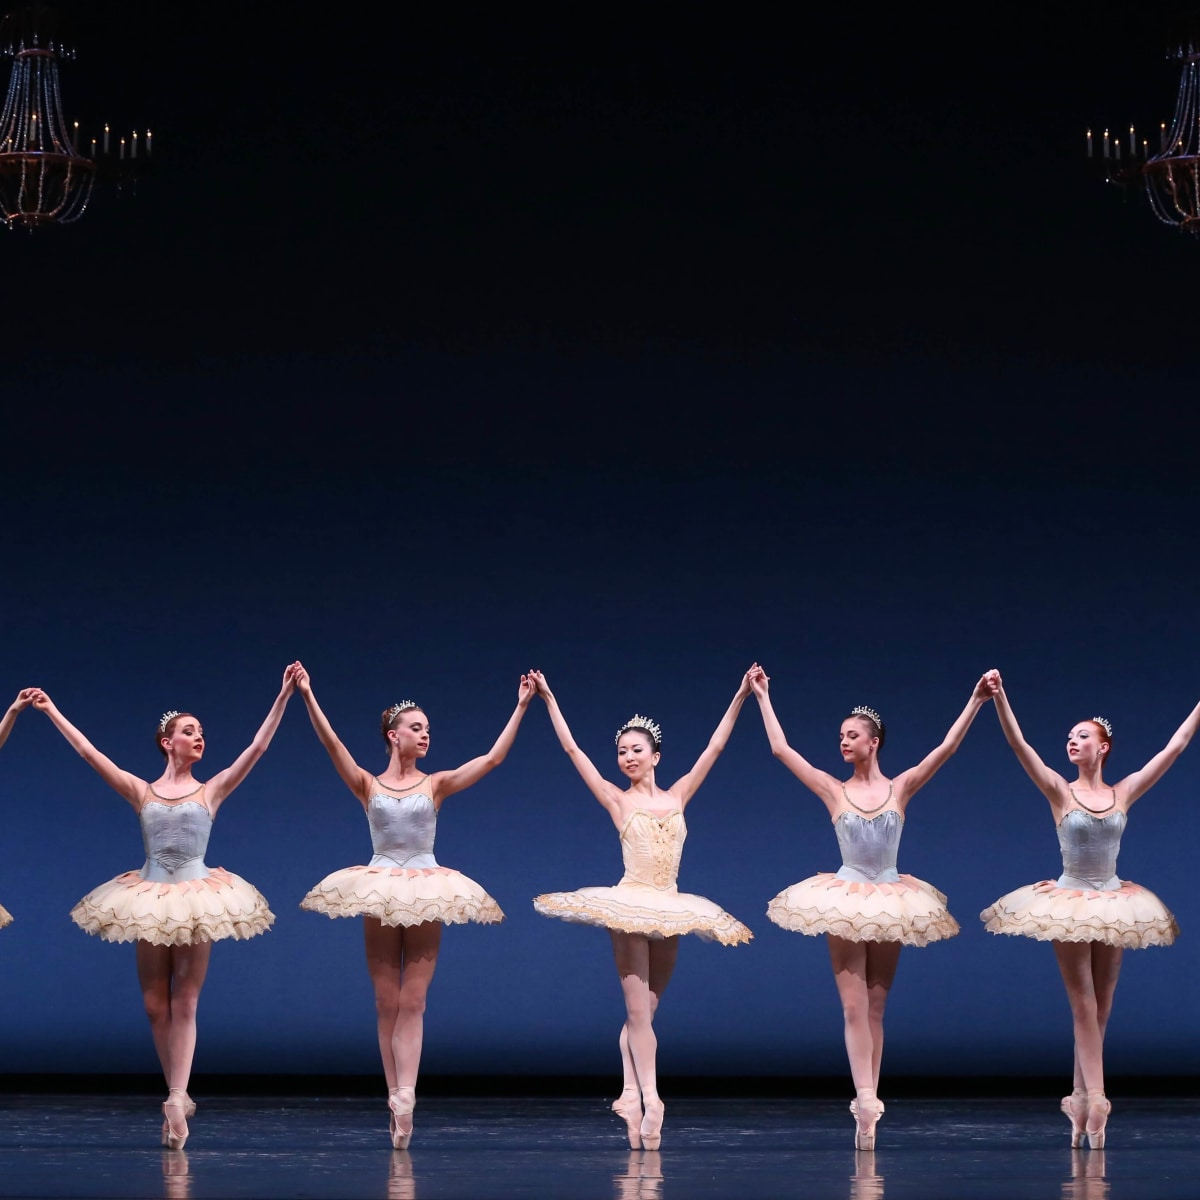 Houston Ballet 9.16, Theme and Variations